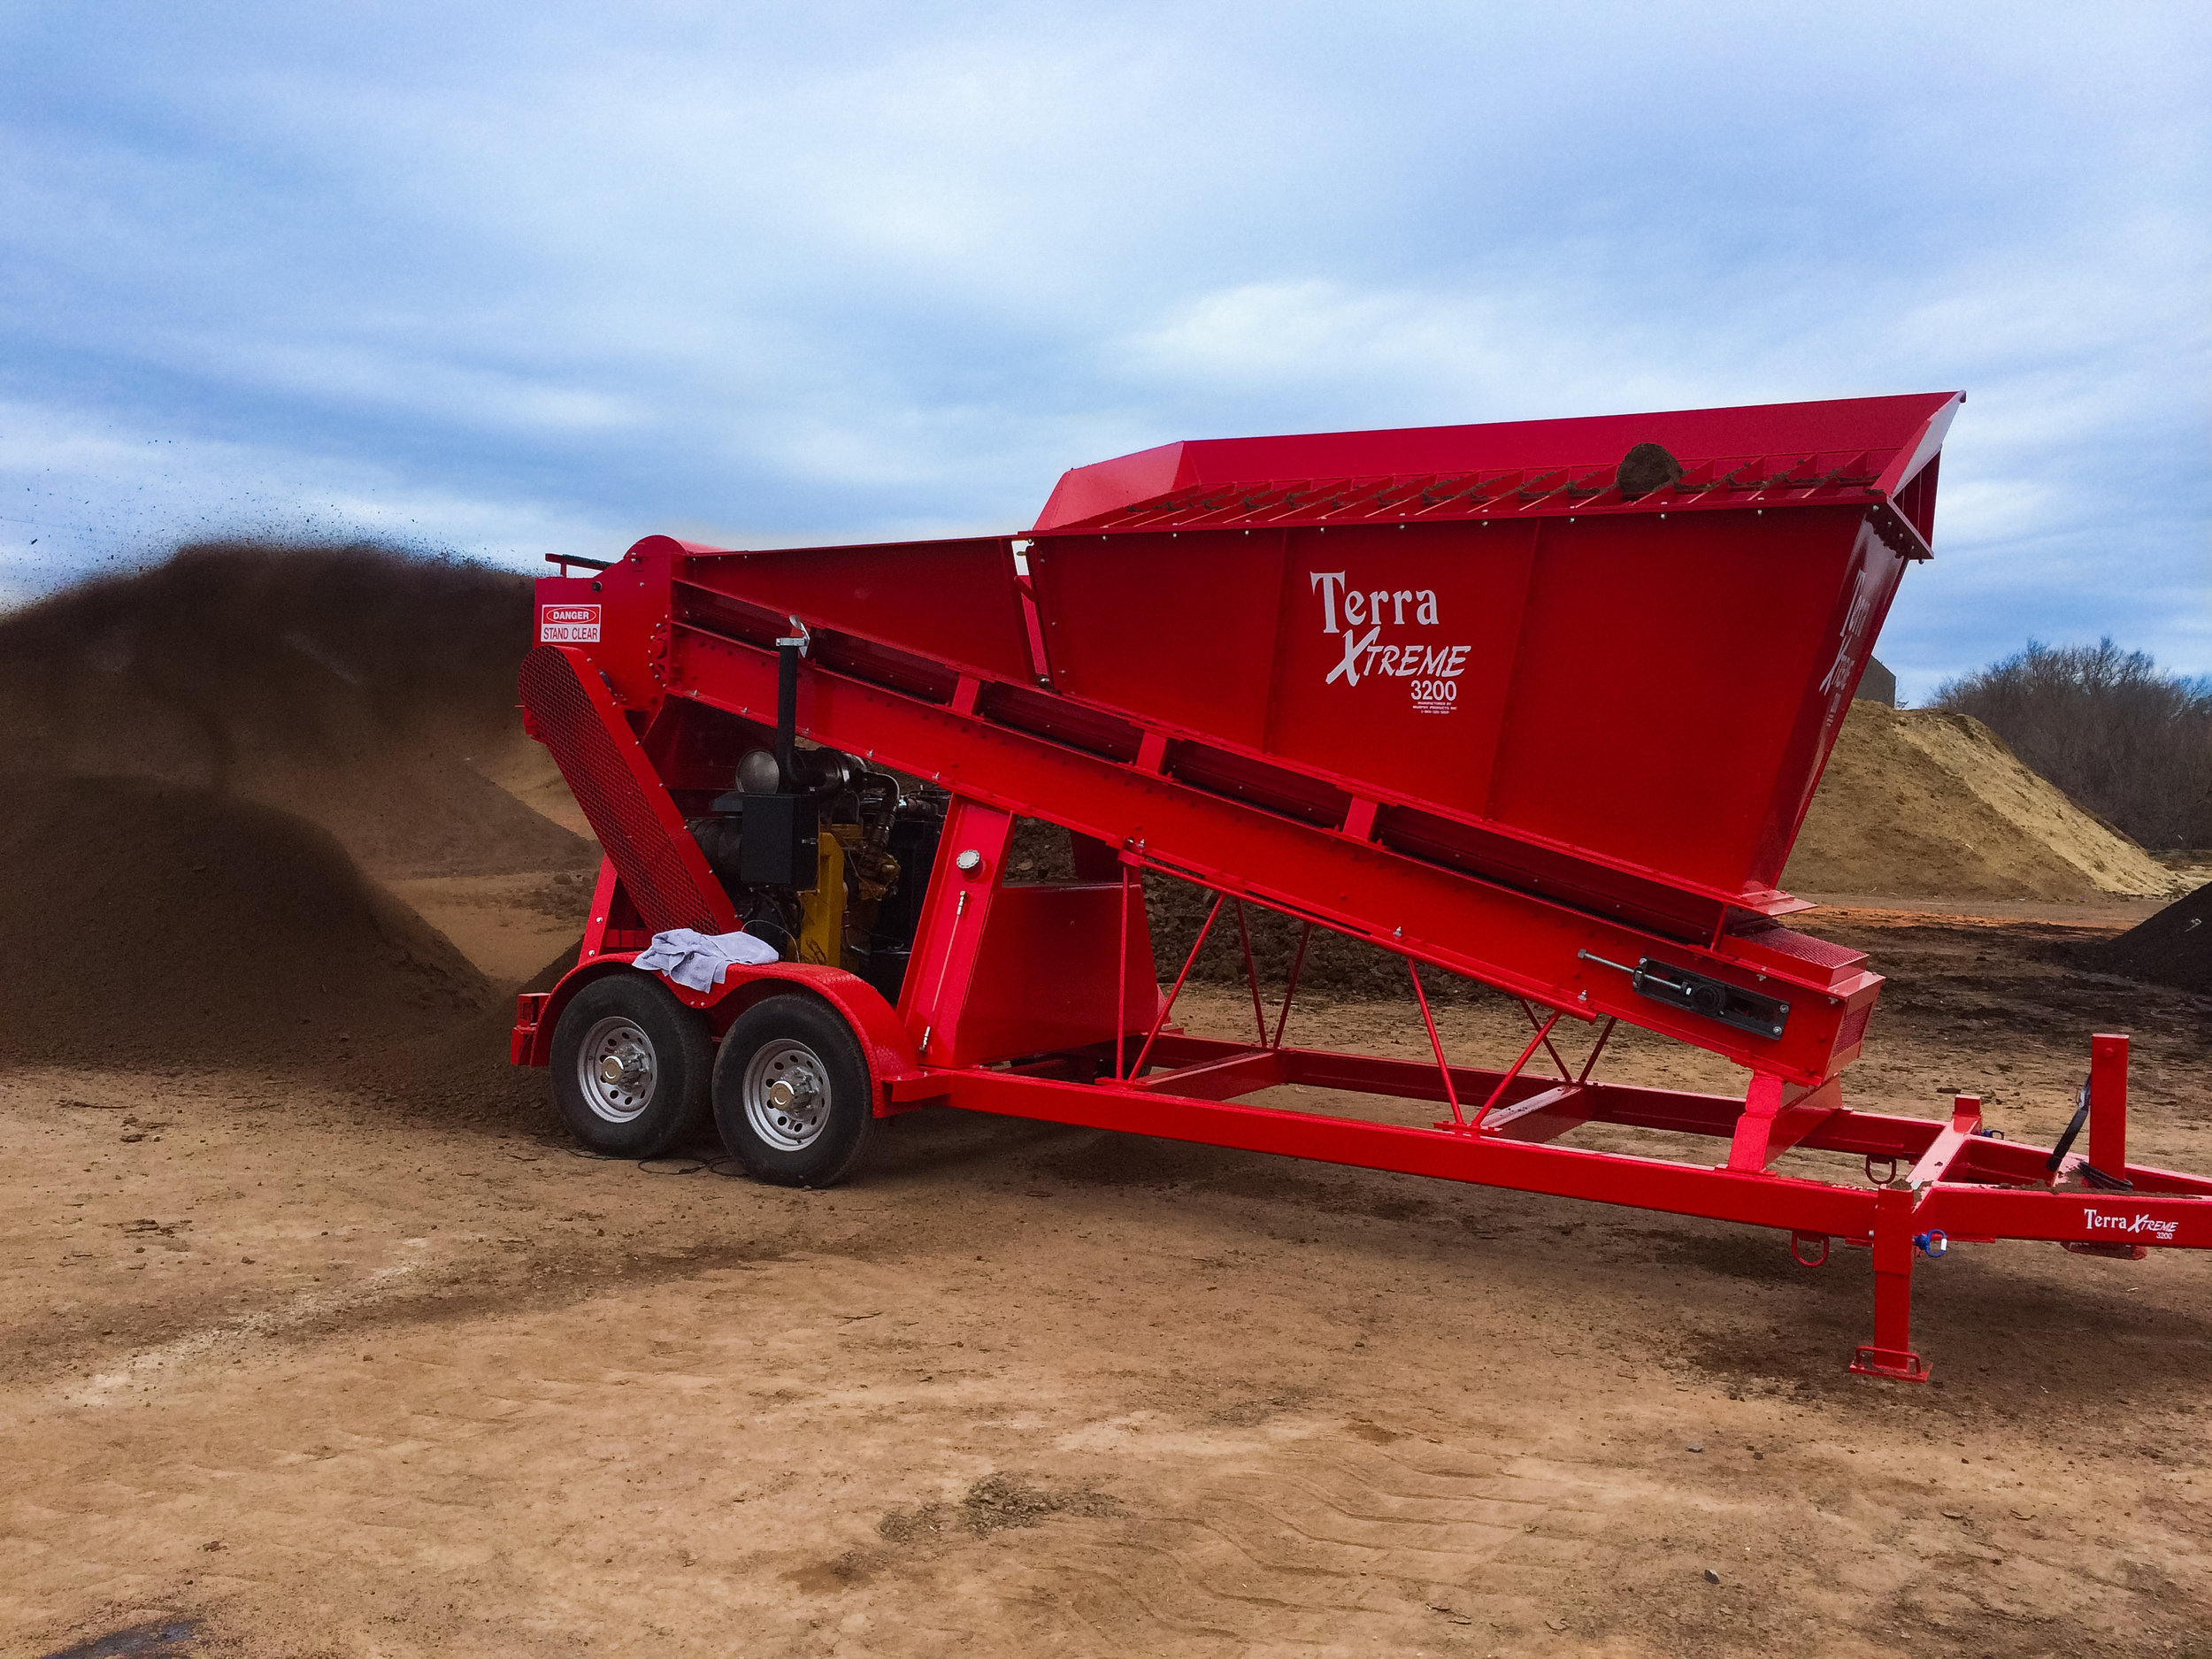 "Terra XTREME 3200 - The Terra 3200 works perfectly in the finishing of compost and manure products. The 3200 features a loading height of 8'3"", and a maximum processing capacity of 200 cubic yards per hour. The 3200 is our original model, still in production after 40 years and widely requested...Learn More >>"